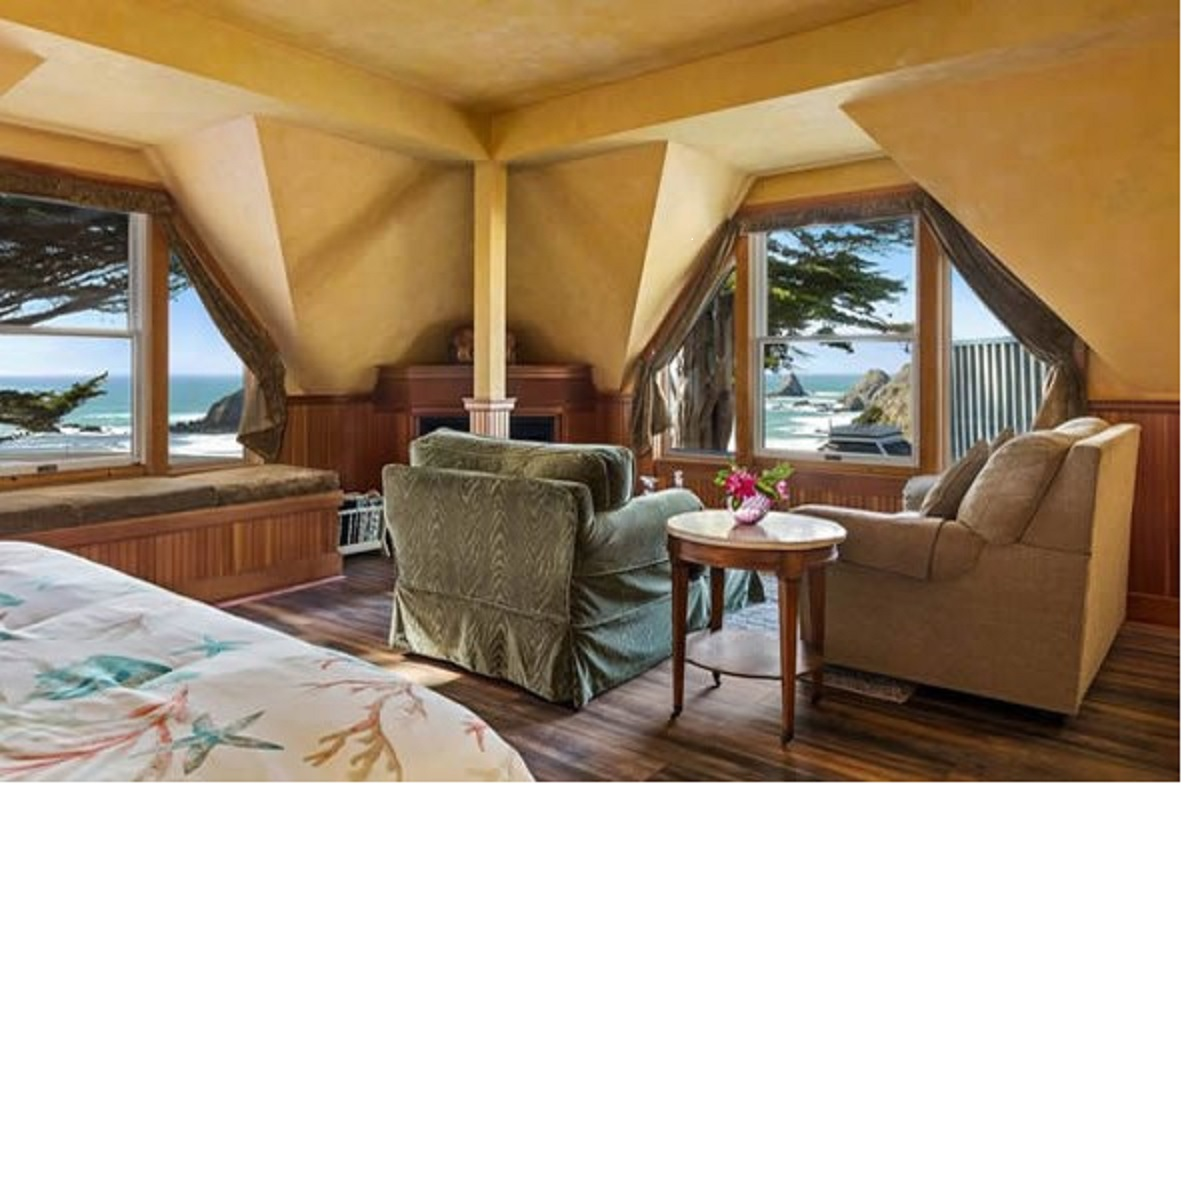 Two Night stay at the Elk Cove Inn Mendocino Coast - Ocean View Room